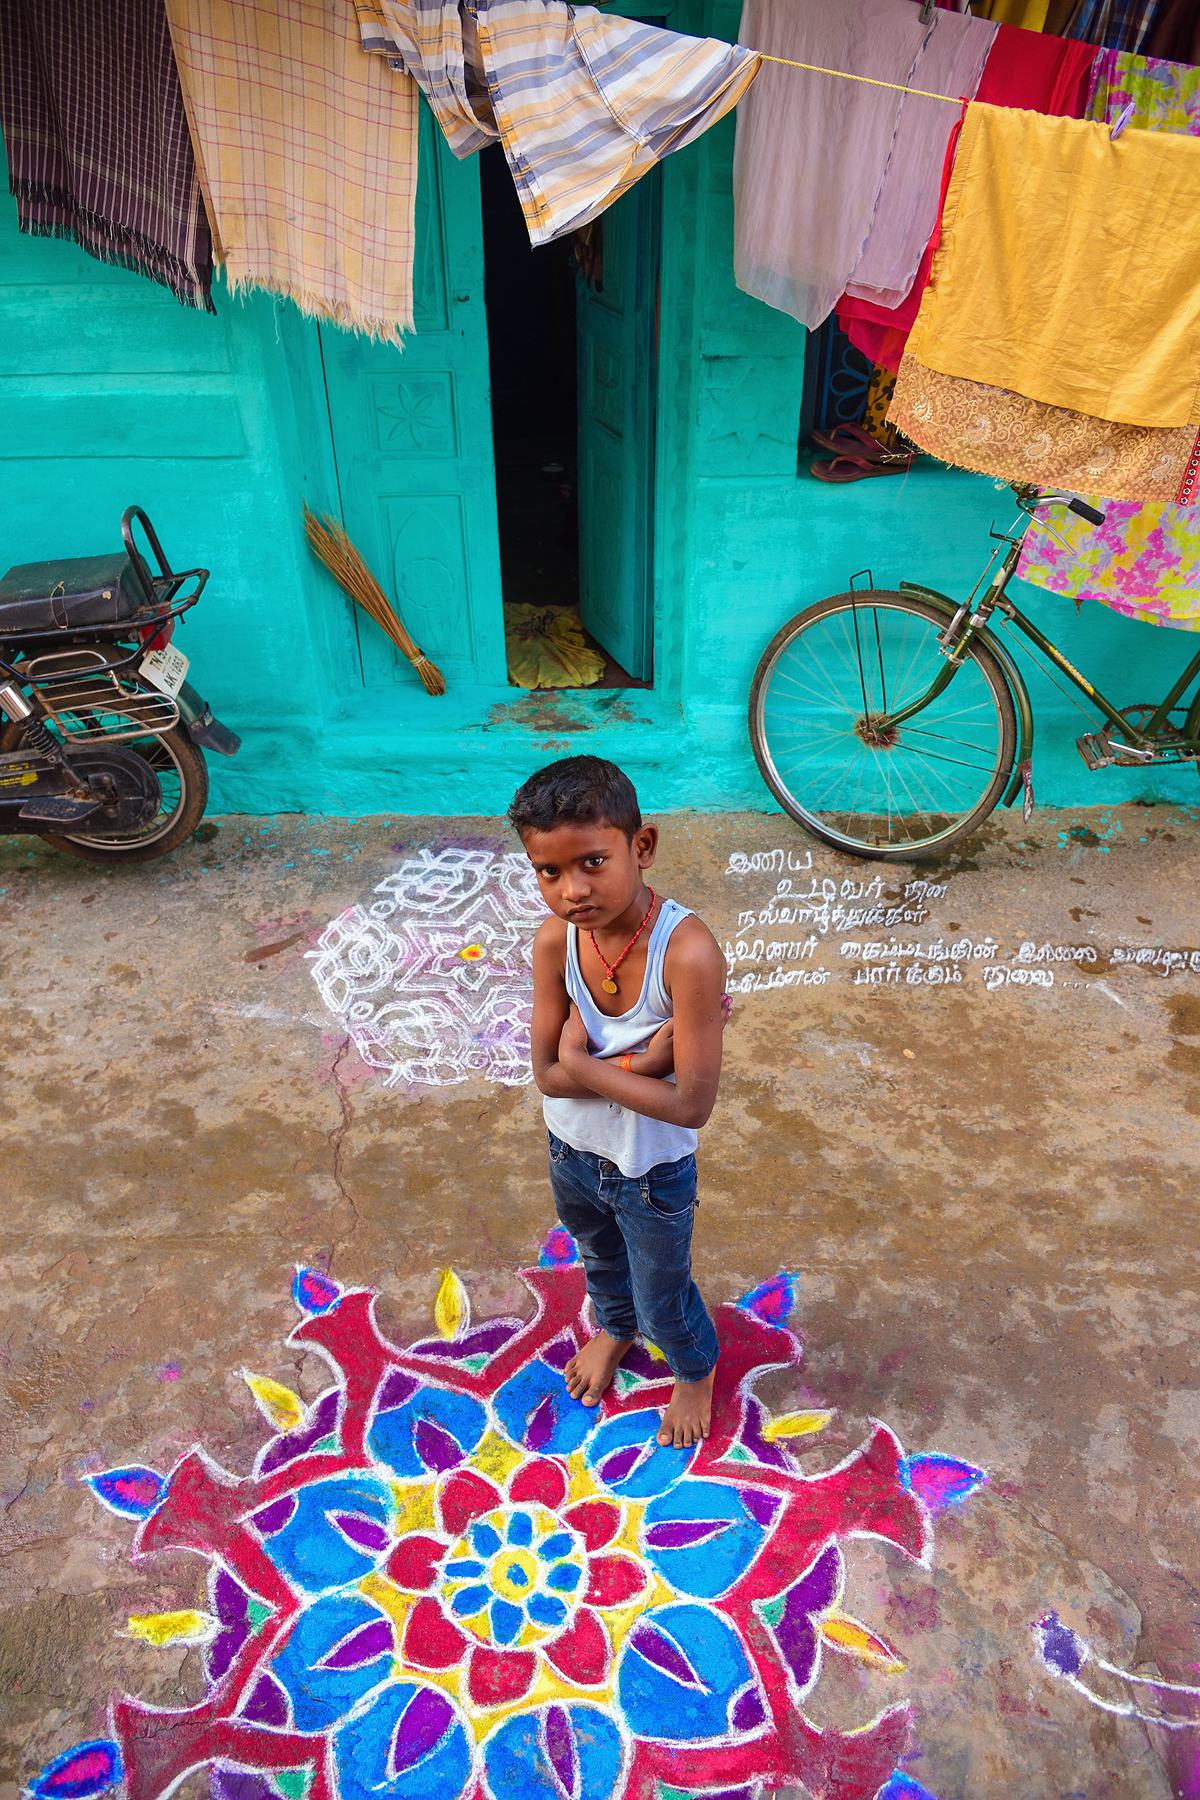 photo taken from madhura (tamil nadu) 